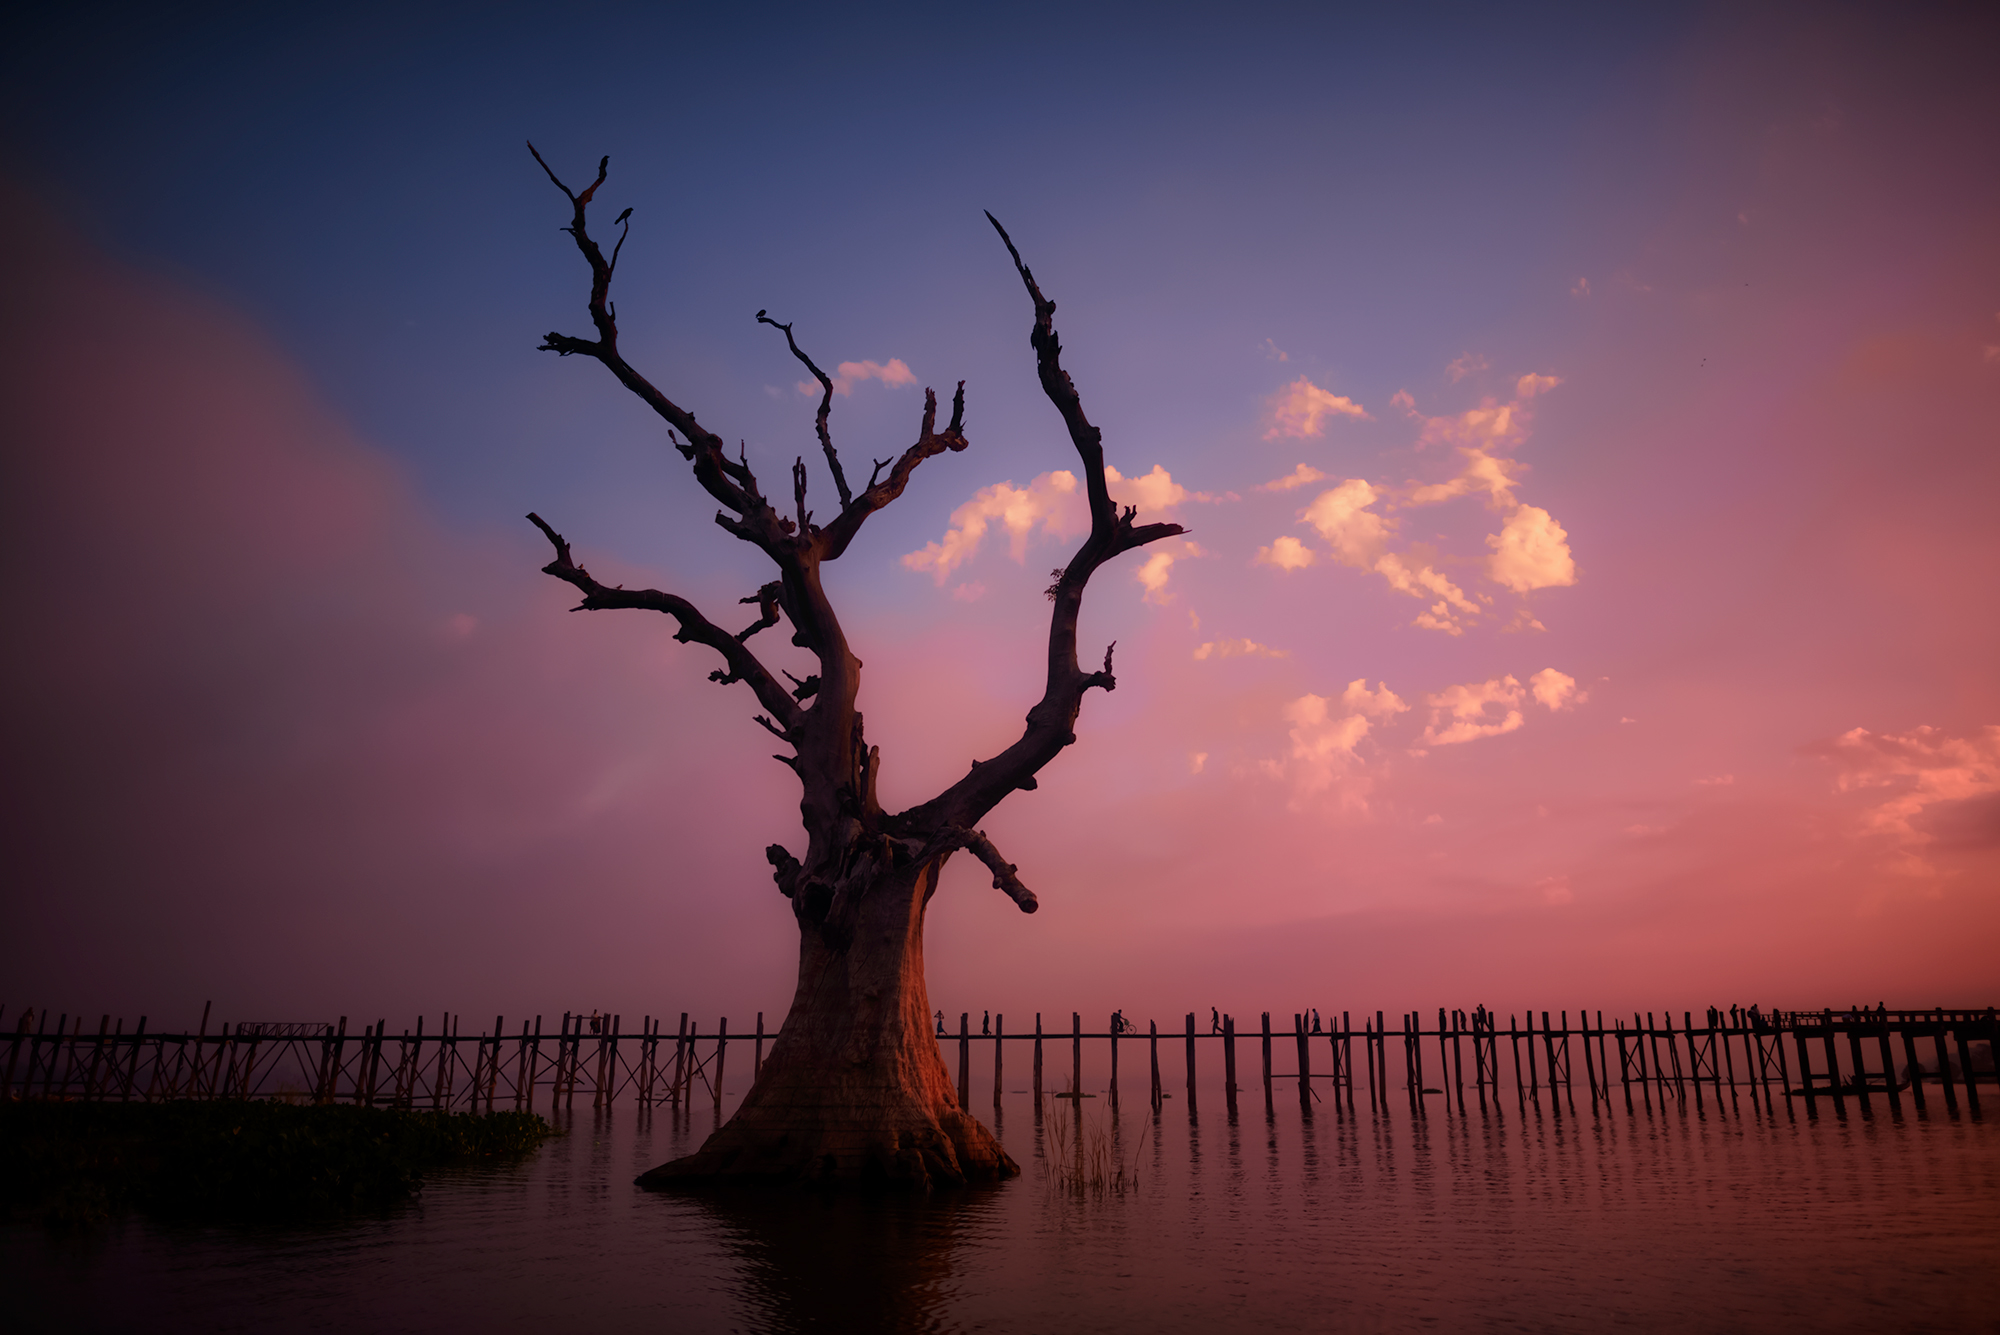 That Mandalay Tree  rises out of the water near U Bein's Bridge.